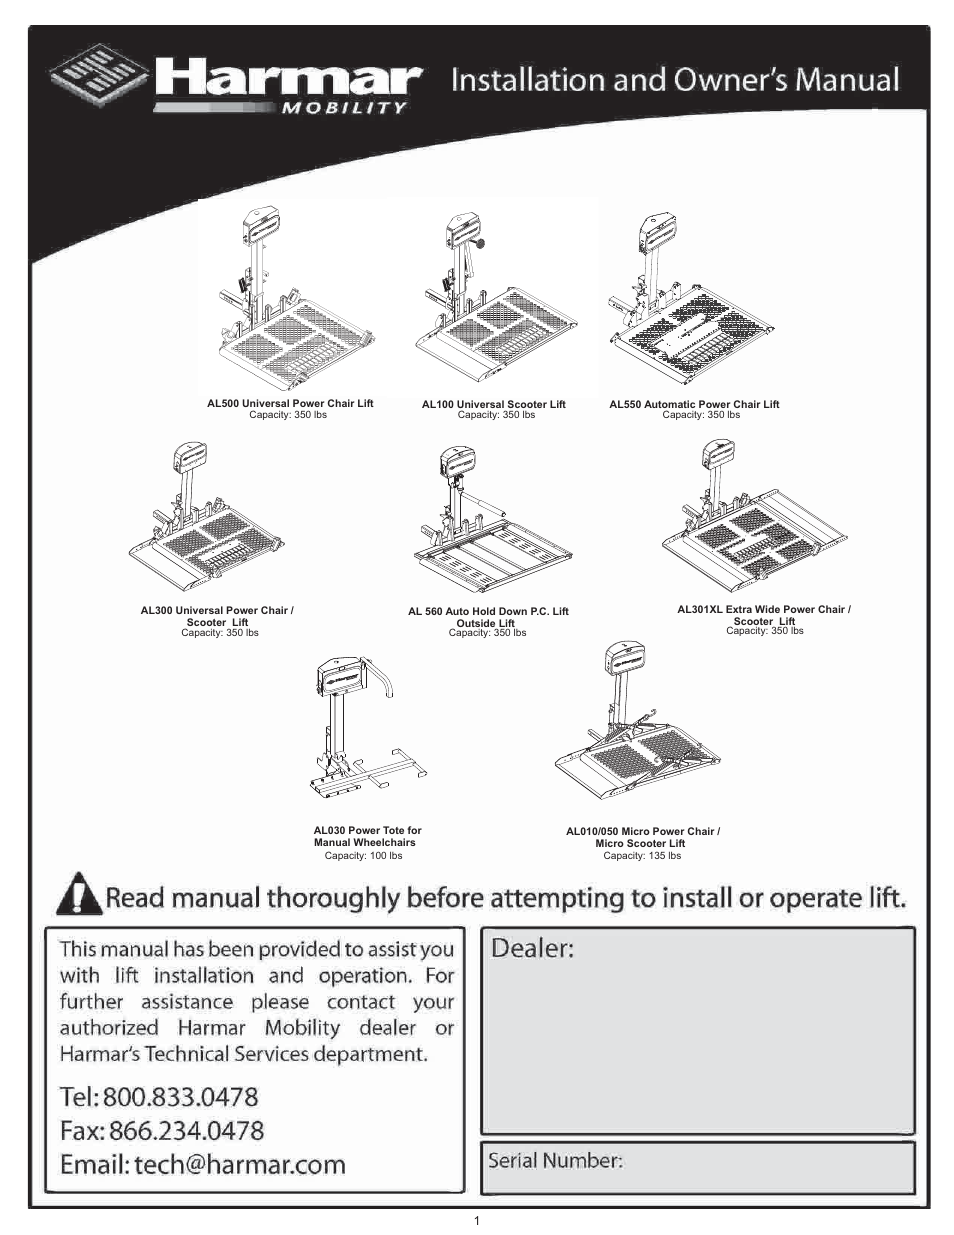 Harmar Mobility AL500 User Manual | 36 pages on